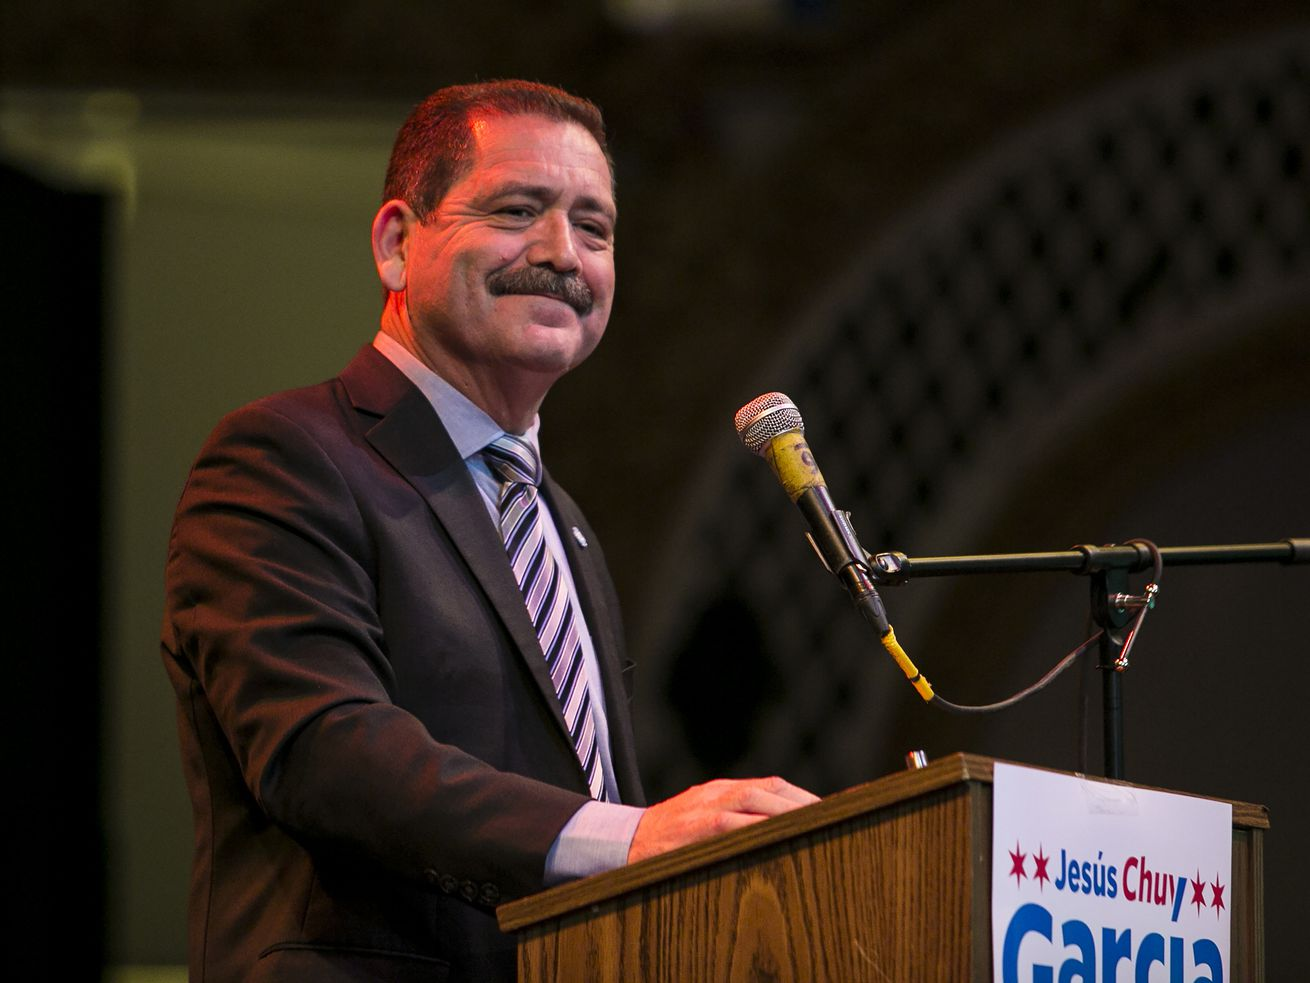 """ENDORSEMENT: Jesus """"Chuy"""" Garcia for Congress in 4th District, 2020 election"""